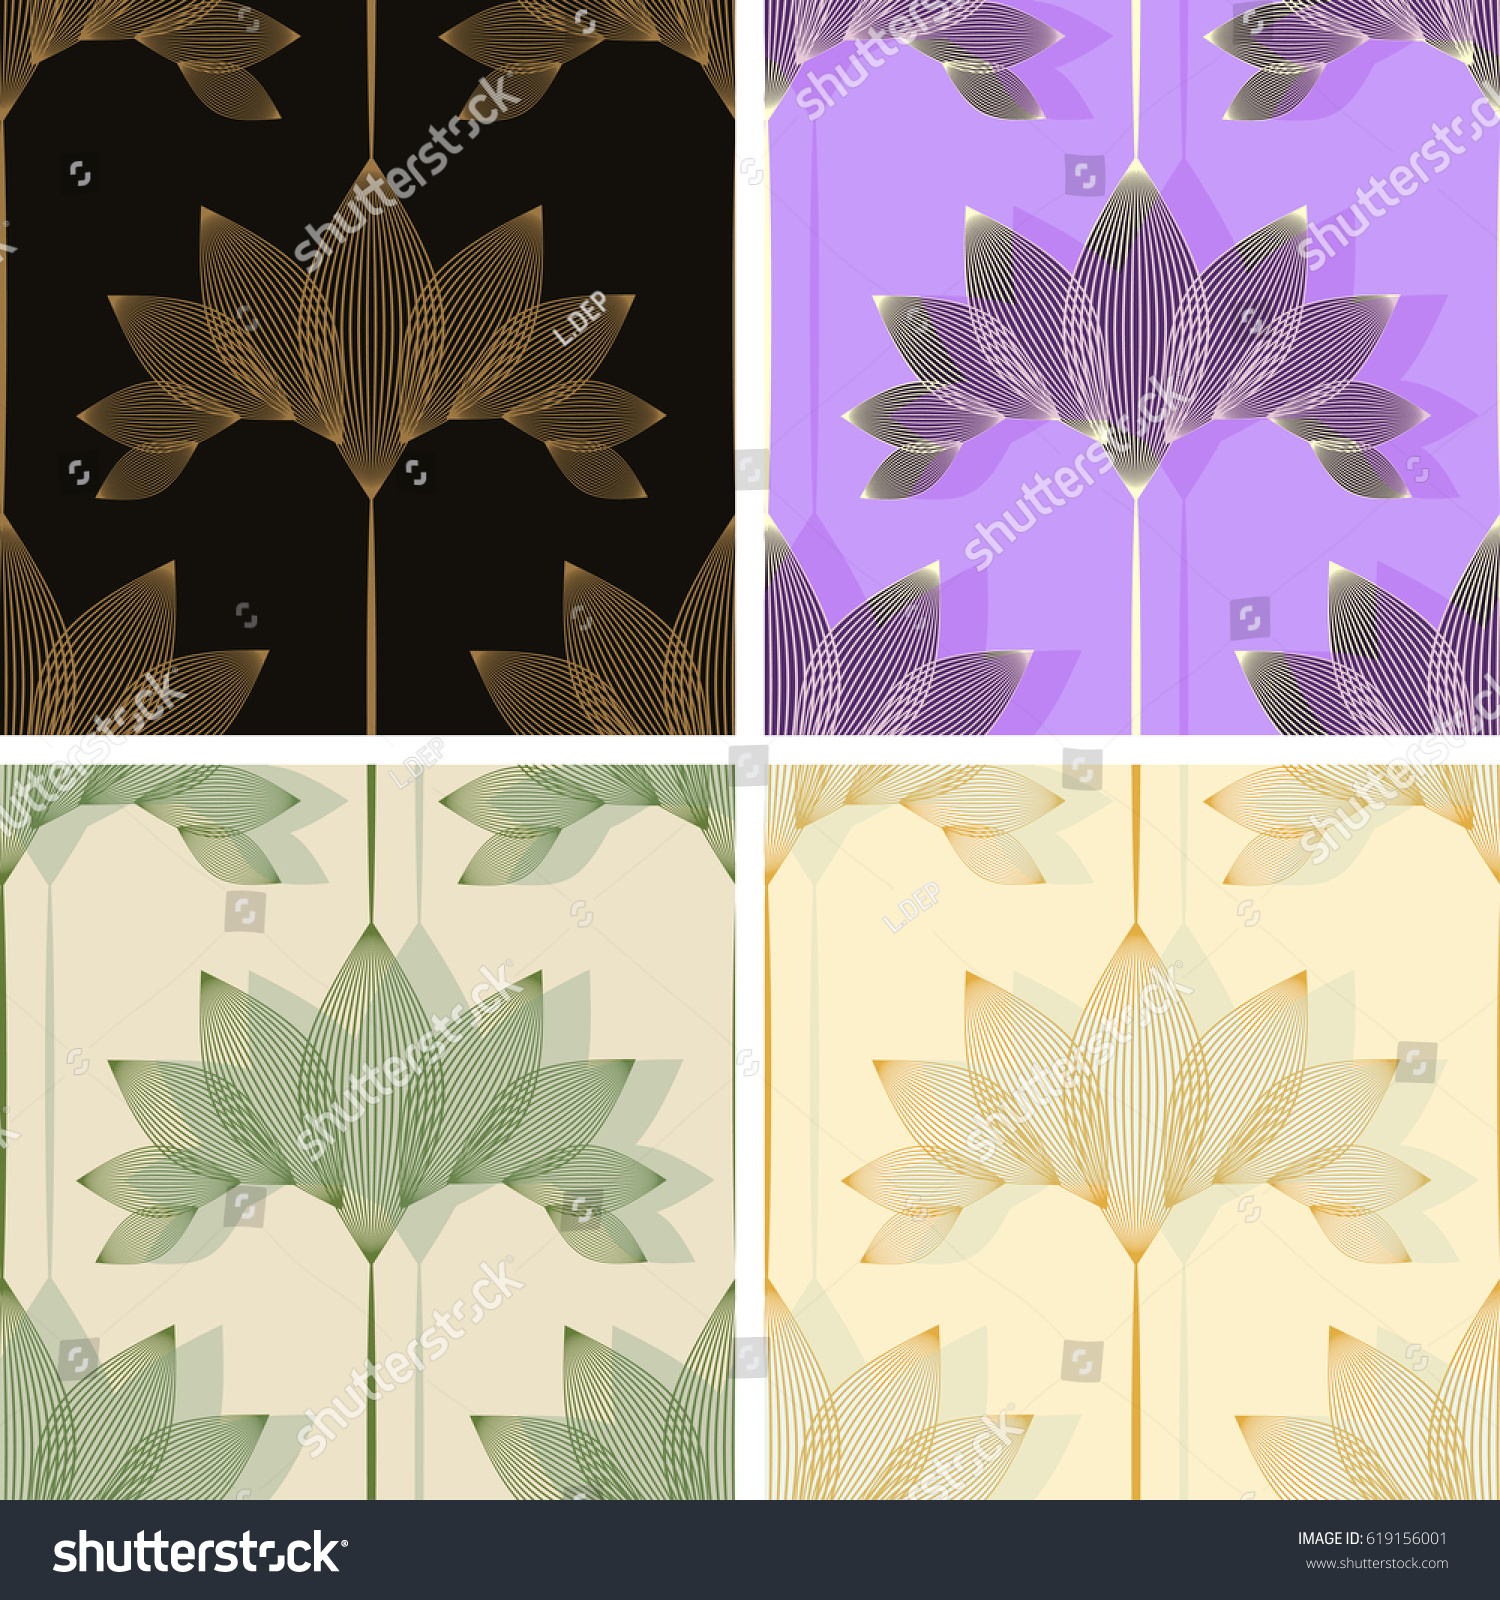 Vintage Style Floral Wallpaper Set Lotus Stock Vector Royalty